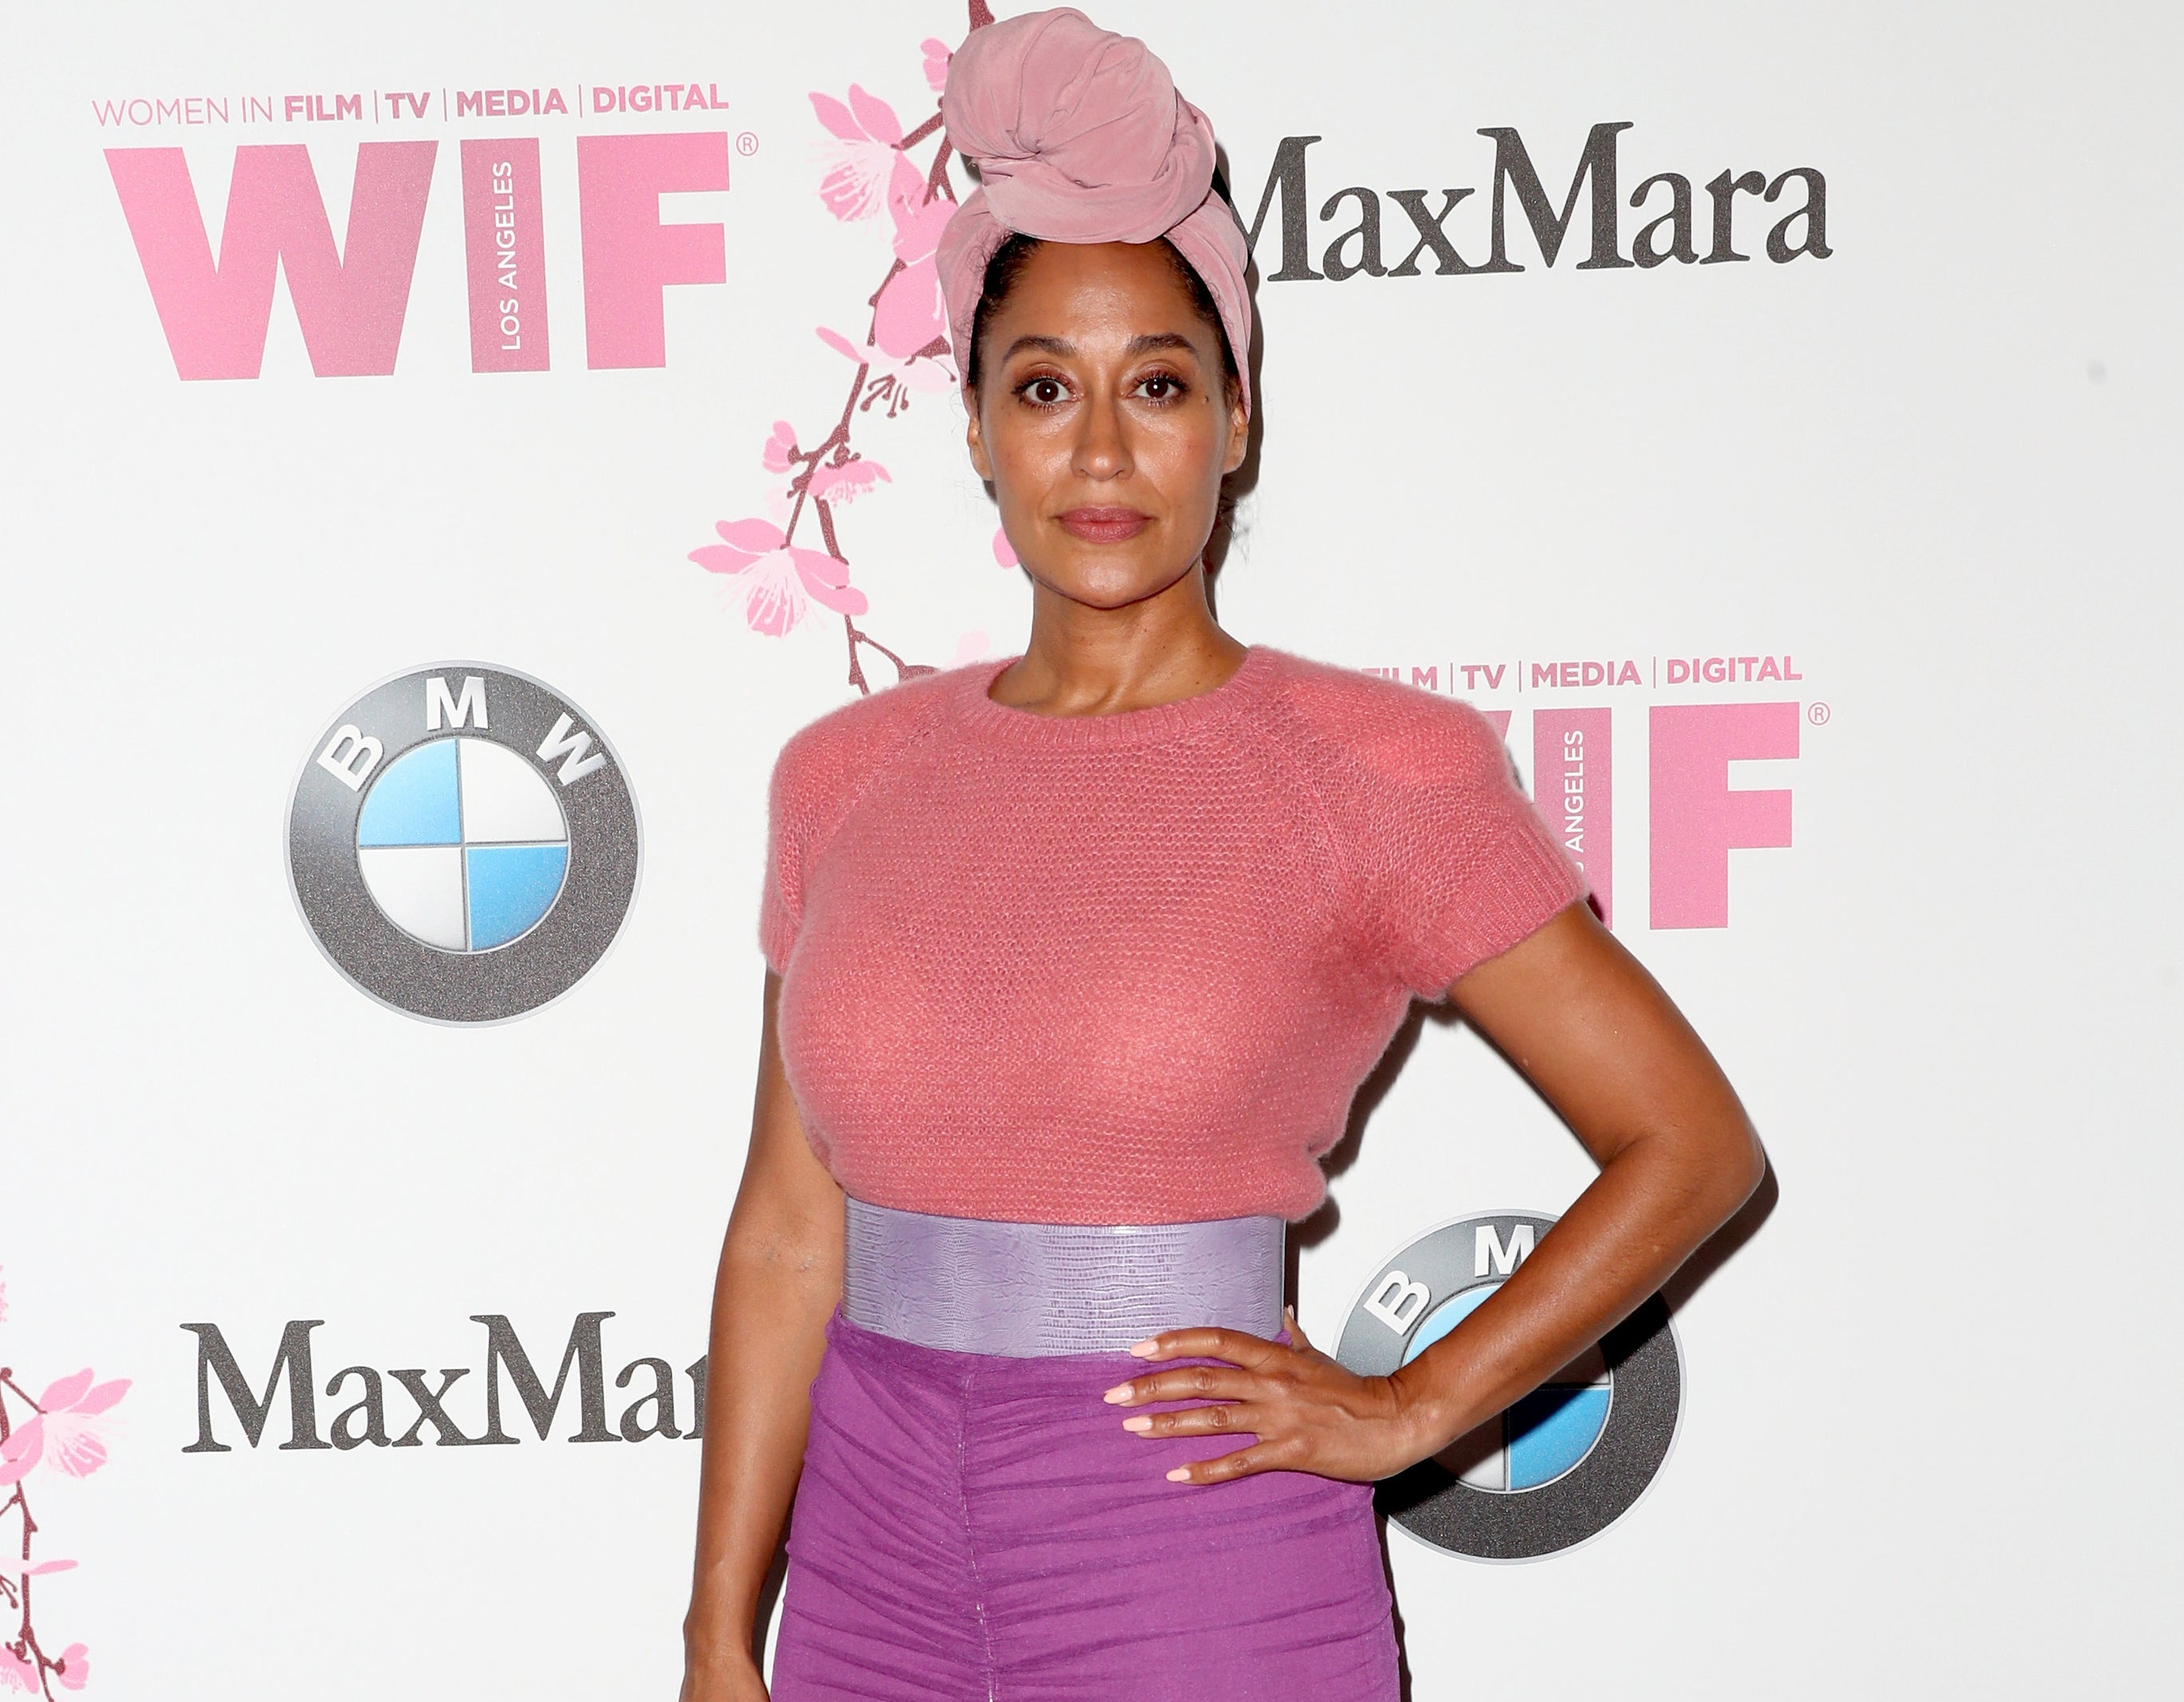 Tracee Ellis Ross wearing a bright top and skirt, posing at a Hollywood event